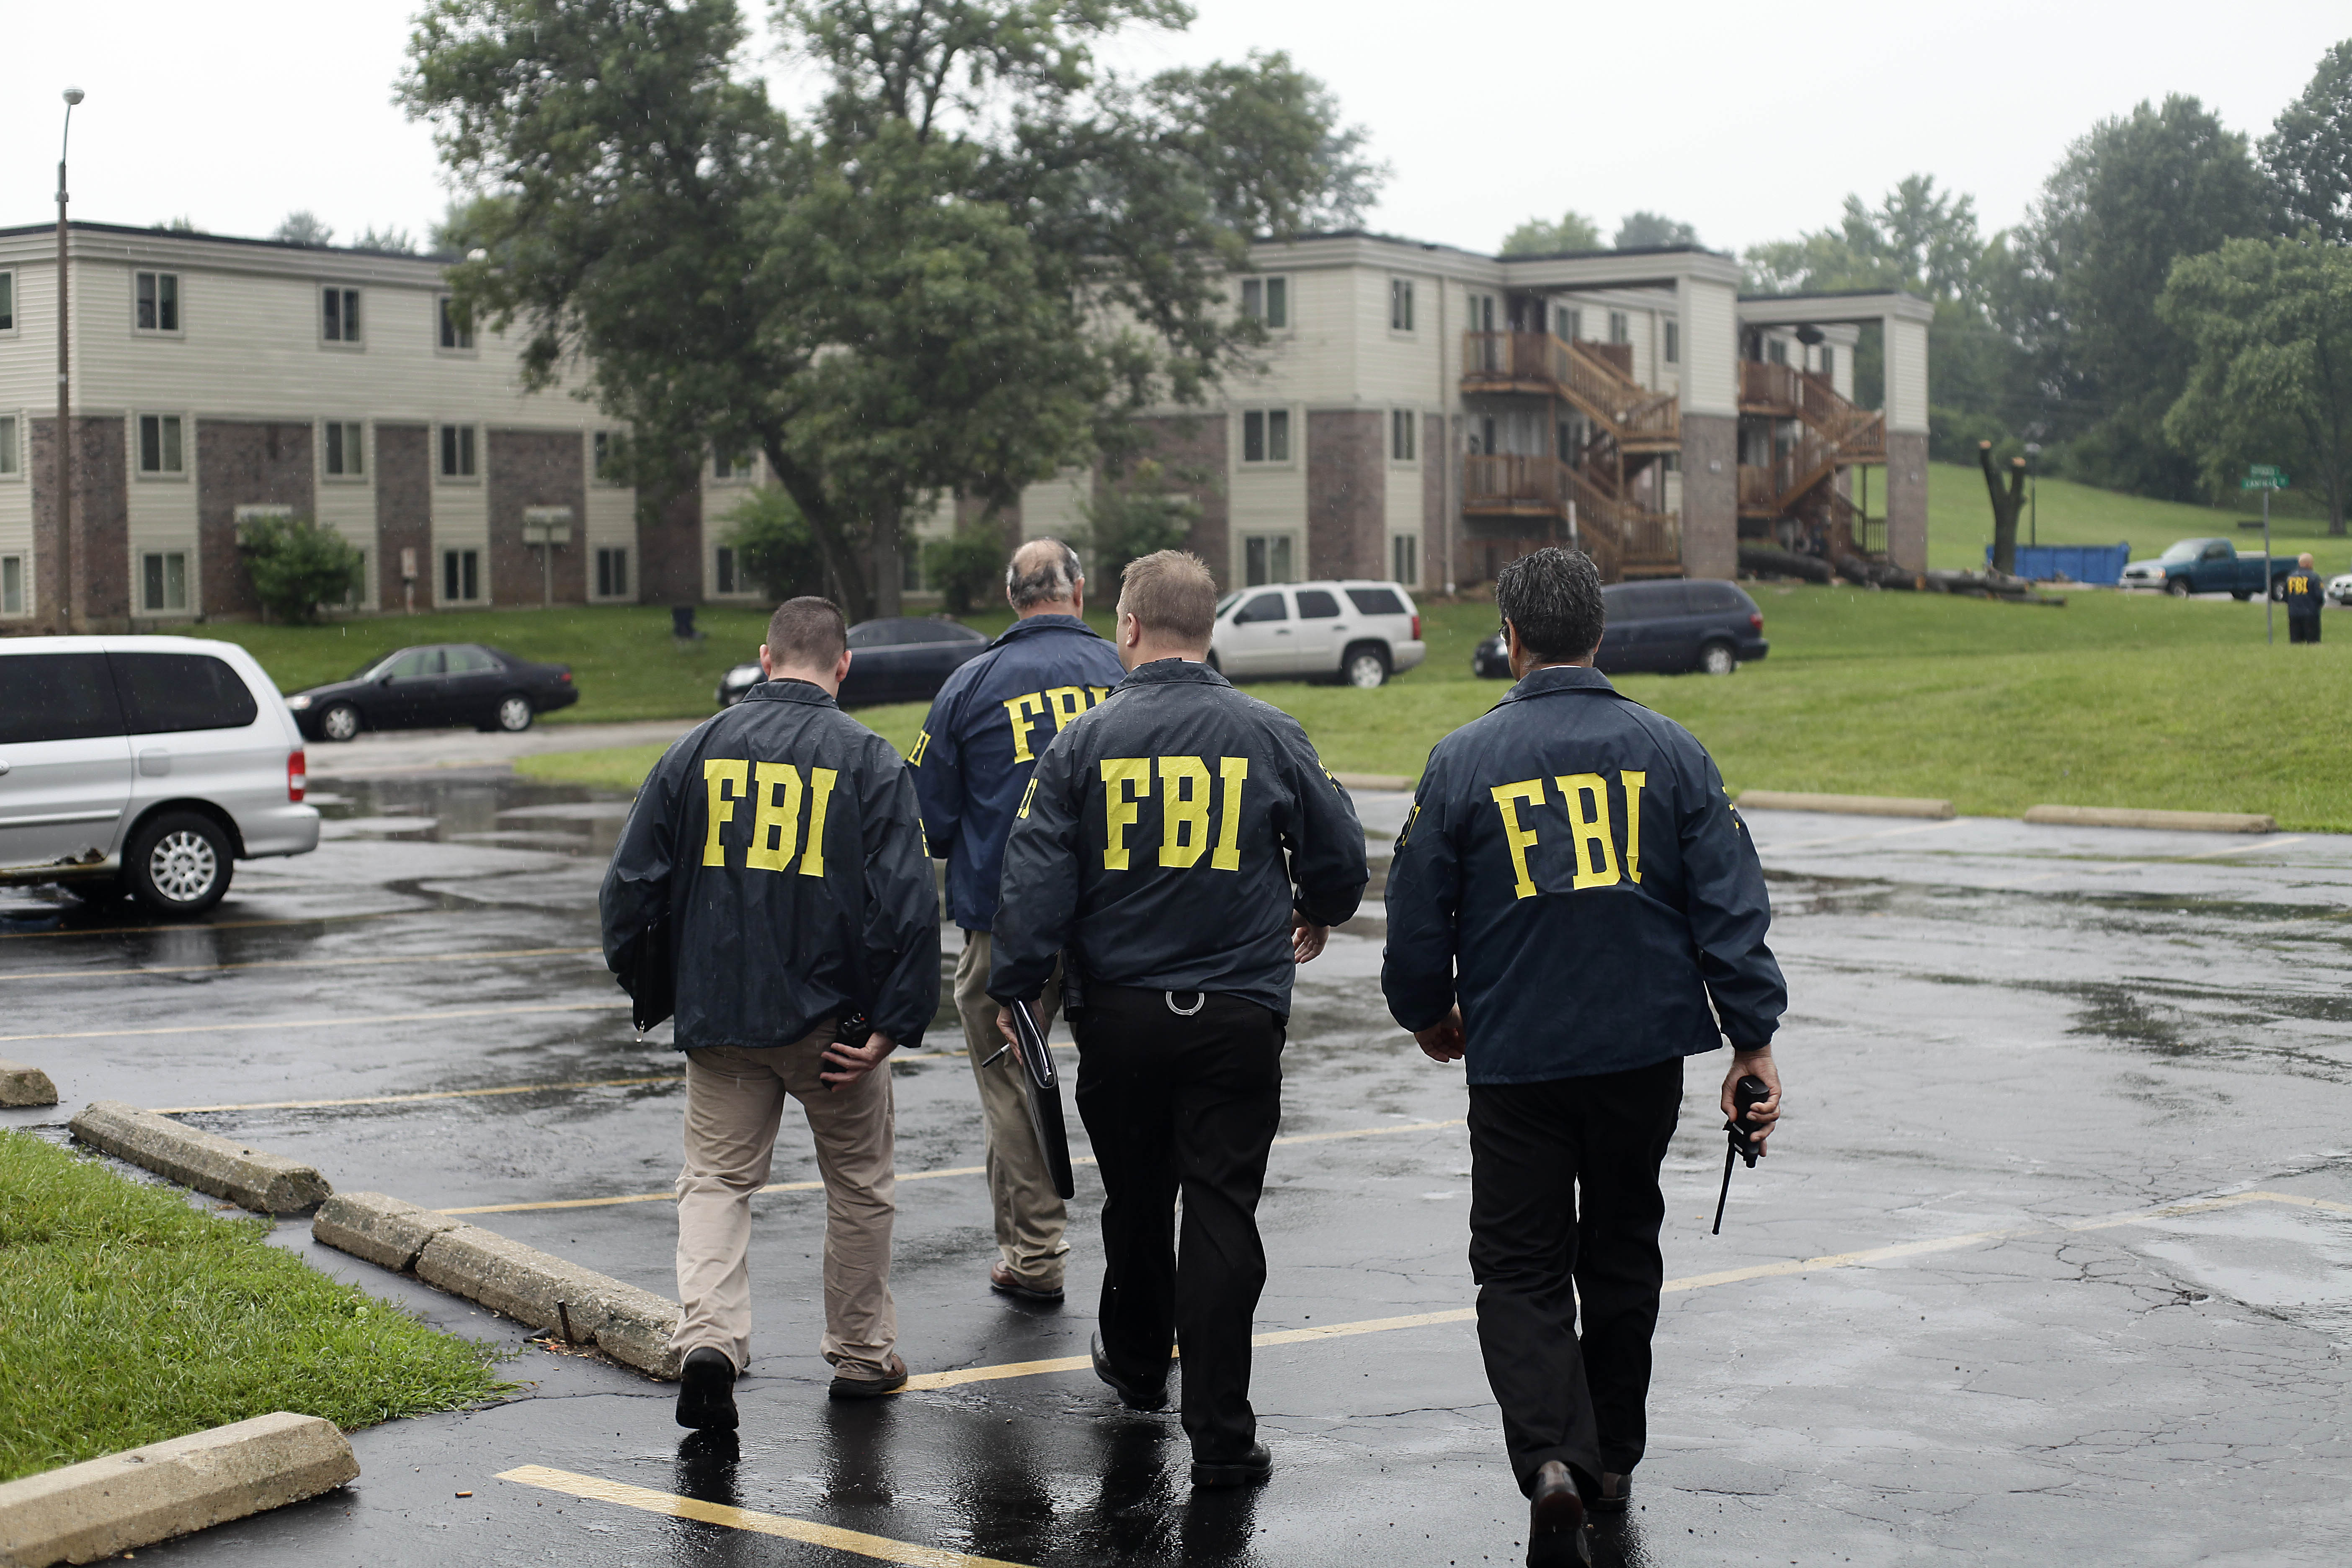 FBI under fire for 'completely unacceptable' act